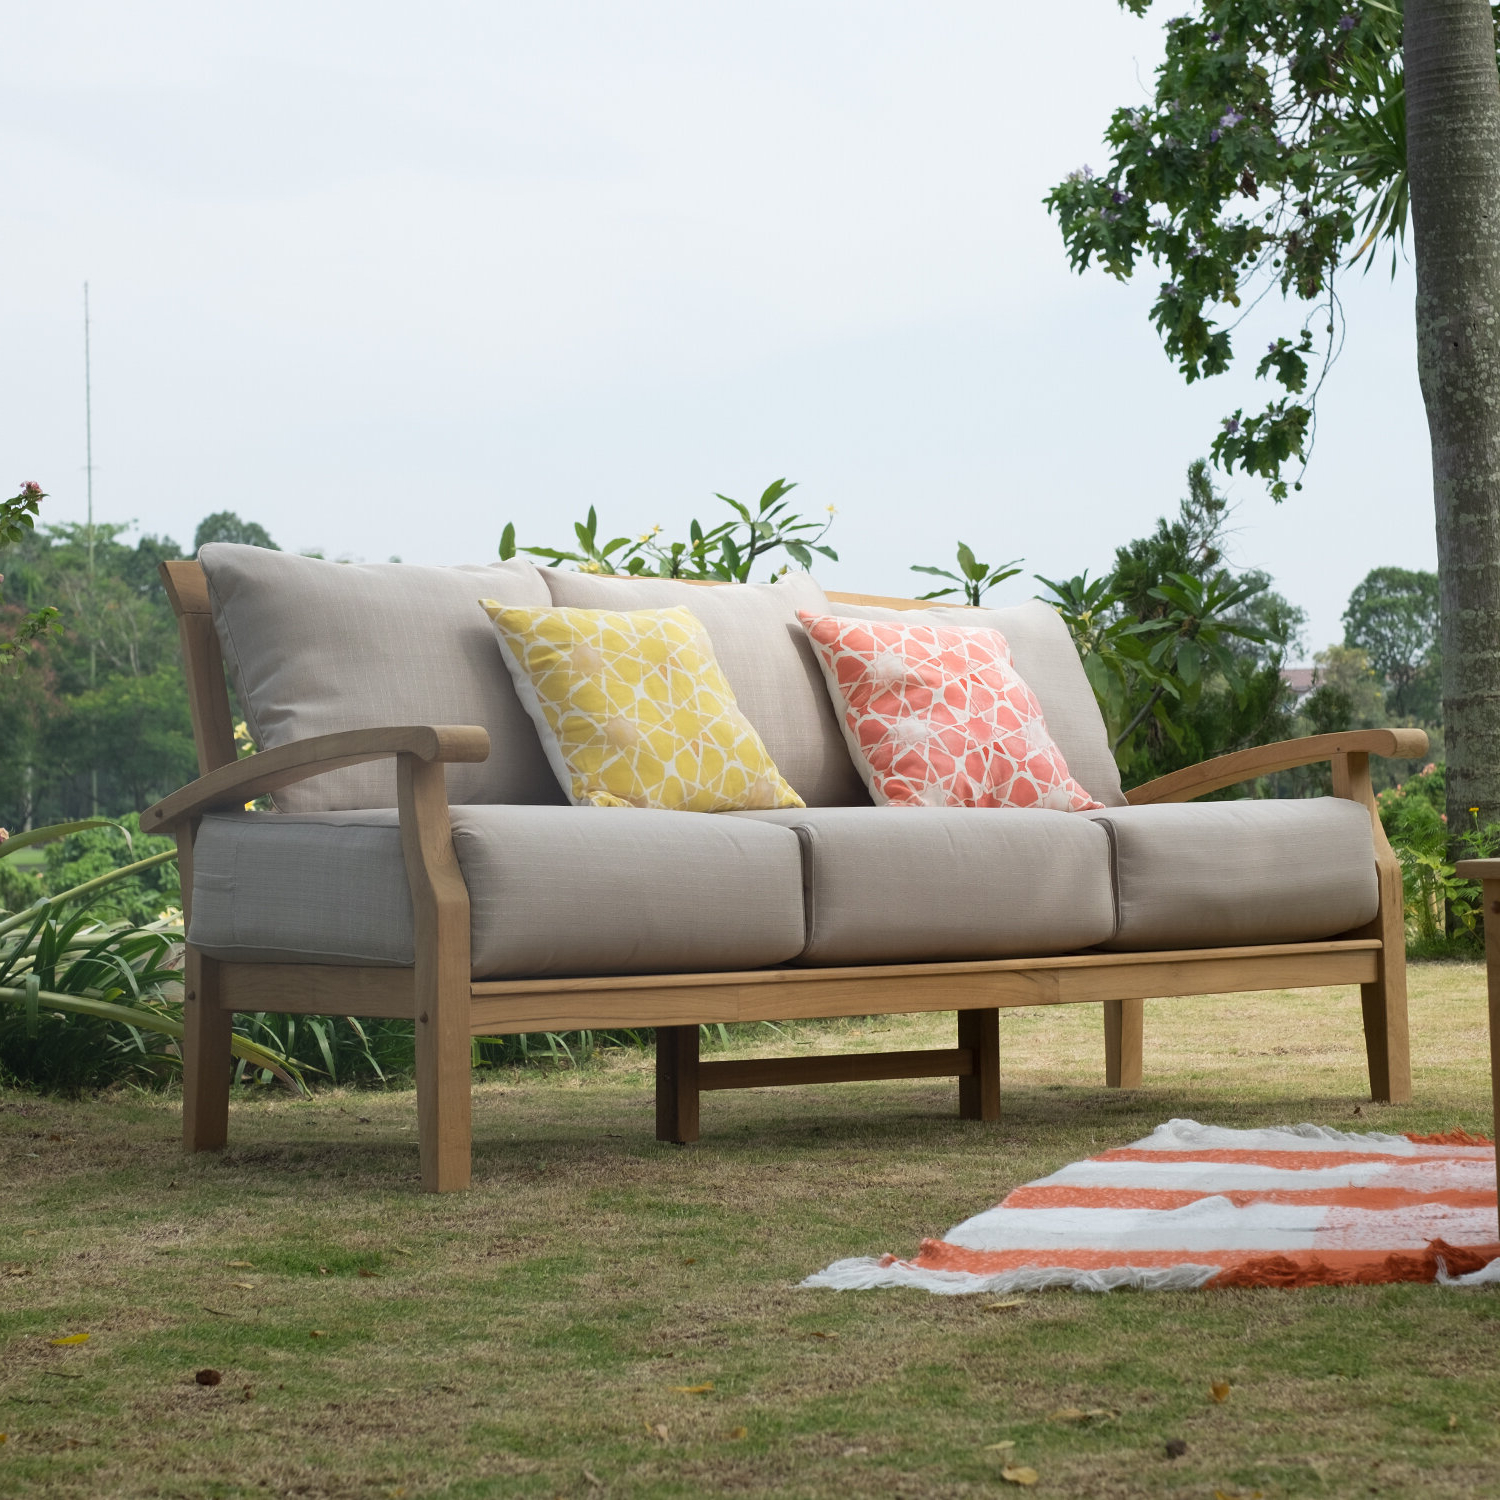 Popular Calila Teak Loveseats With Cushion For Summerton Teak Patio Sofa With Cushions (View 8 of 20)